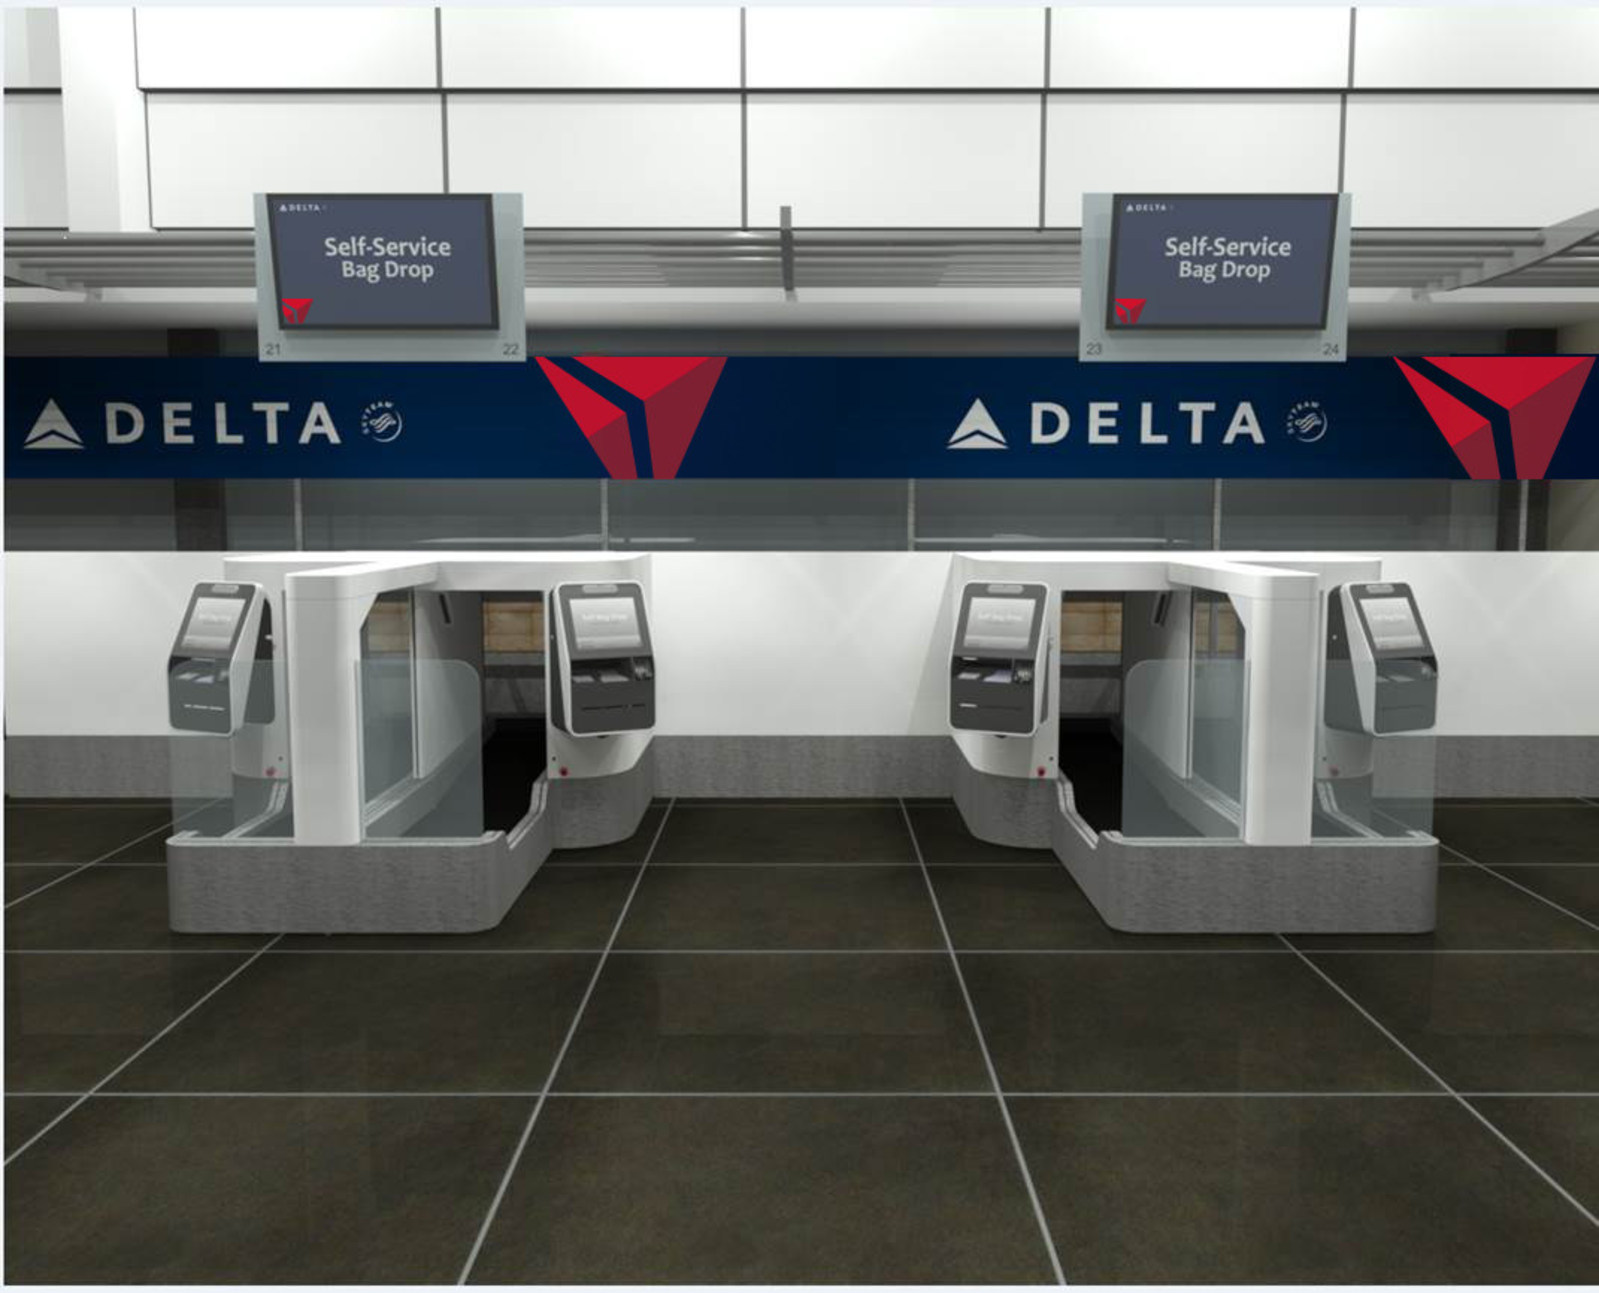 Delta is Testing Facial Recognition Technology, Plans First Biometric-Based Self-Service Bag Drop in U.S. (PRNewsfoto/Delta Air Lines)